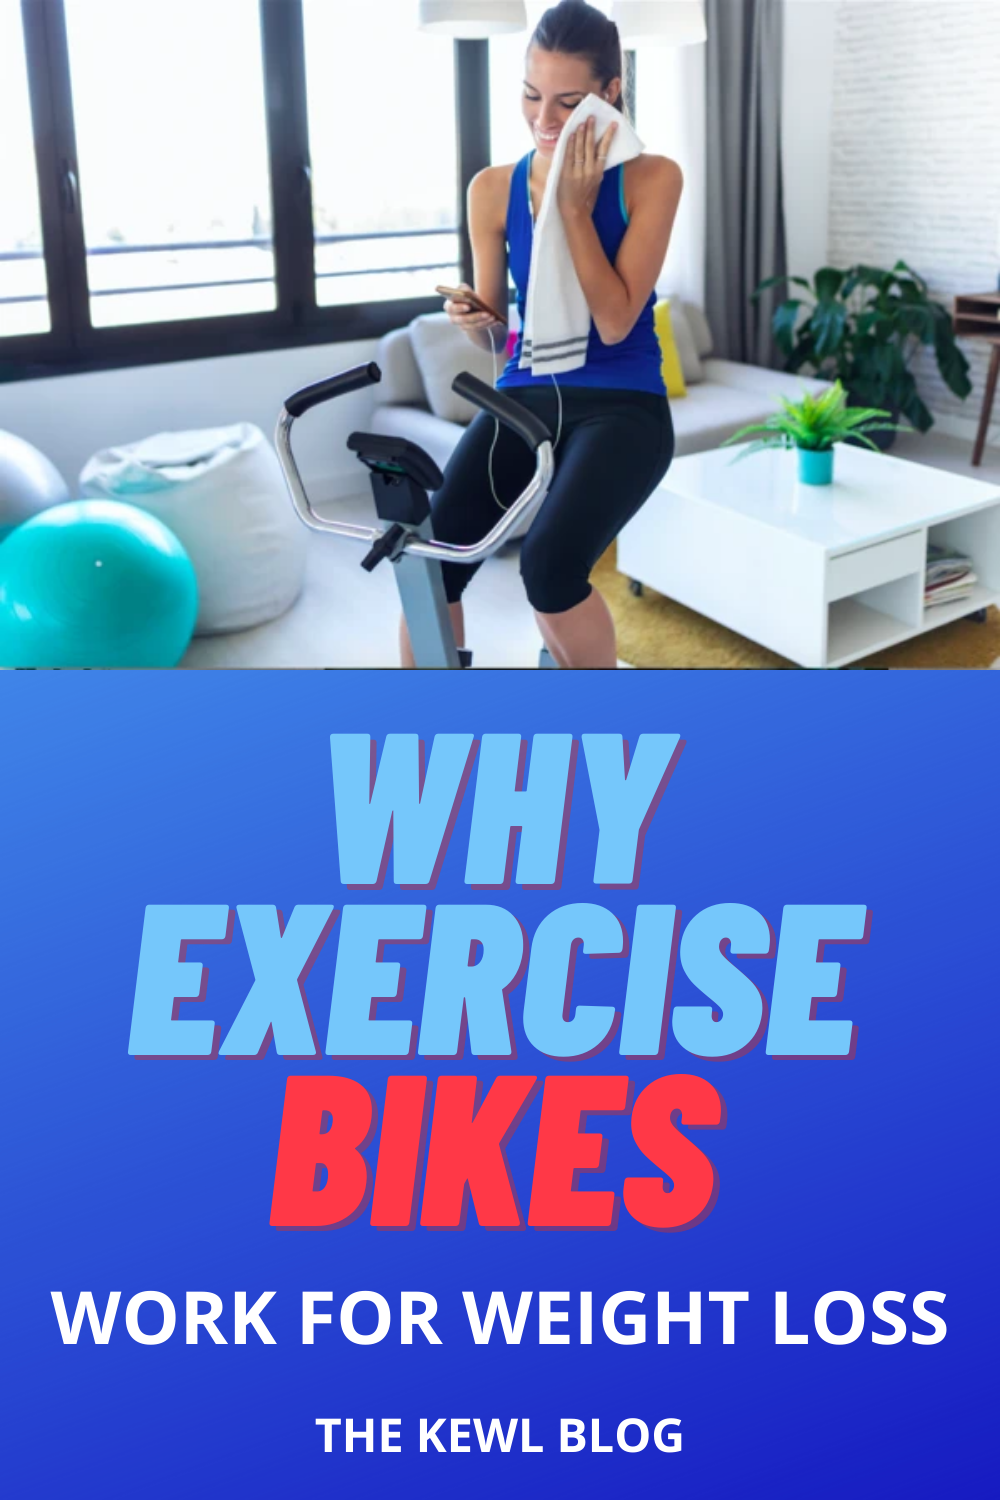 Pinterest pin - Exercise bikes for weight loss